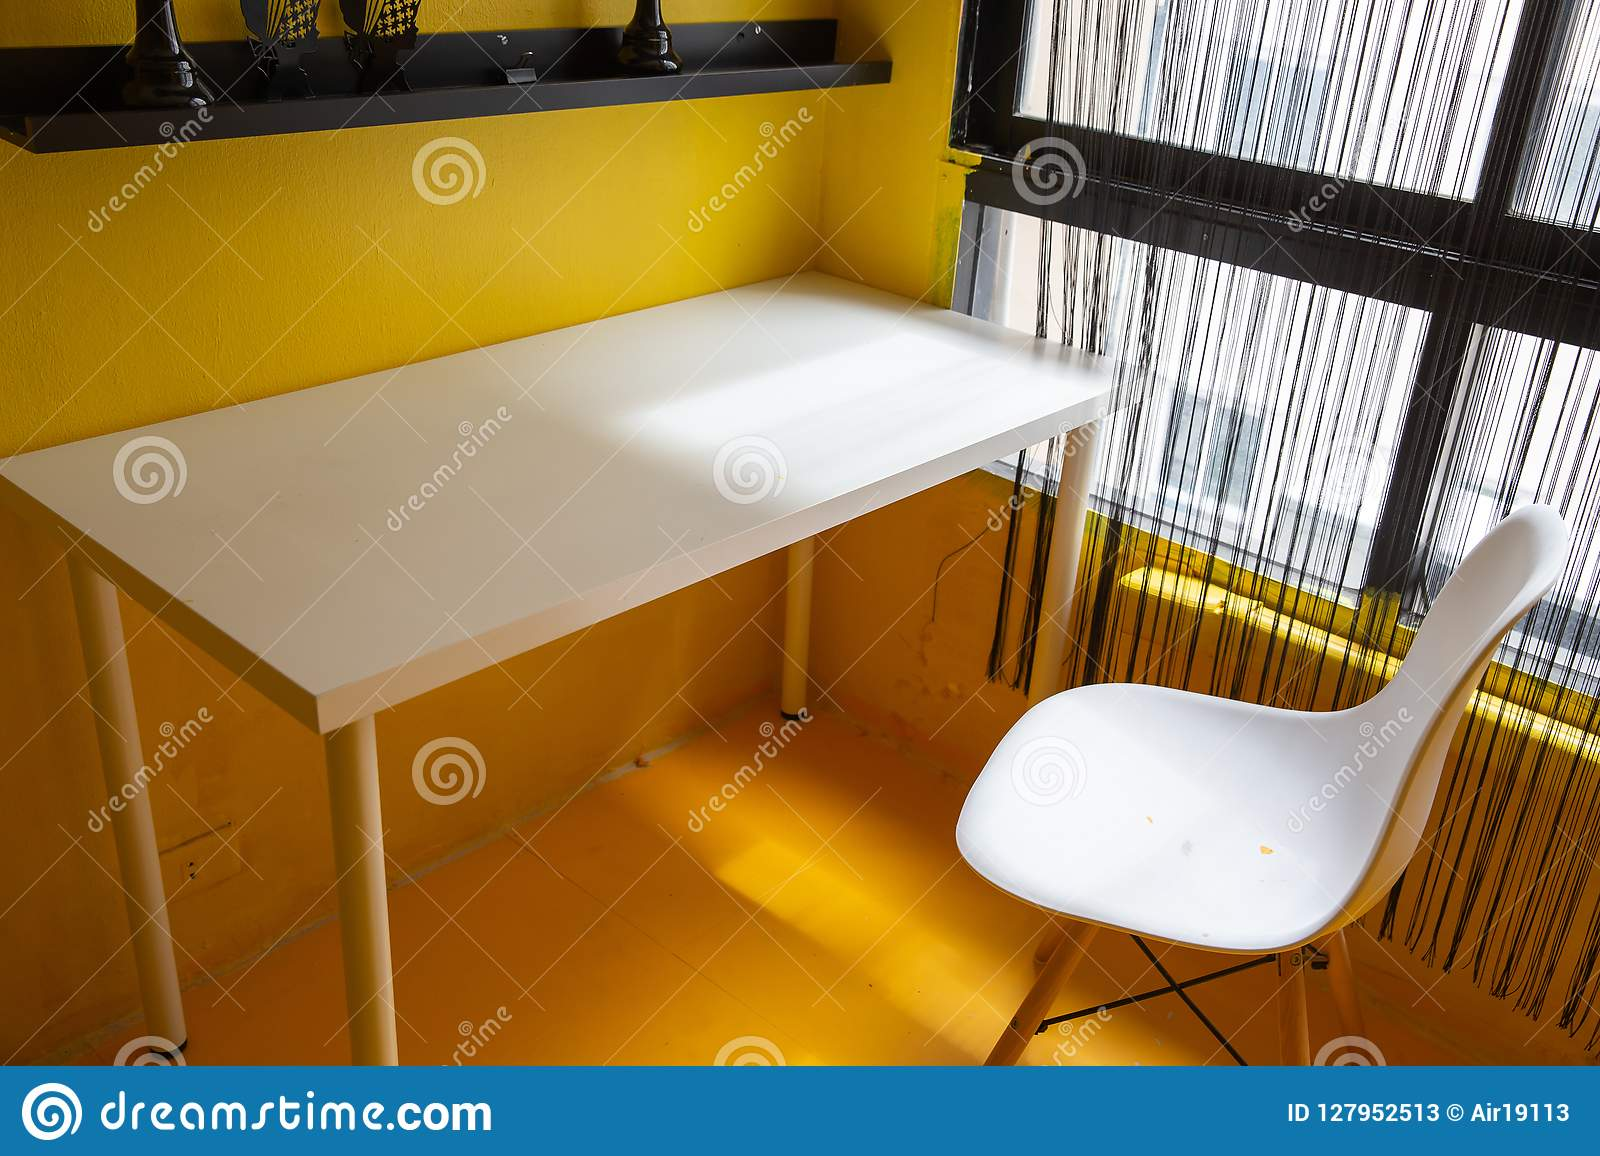 Fine Empty White Desk And Chair In Yellow Room Theme With Light Download Free Architecture Designs Griteanizatbritishbridgeorg